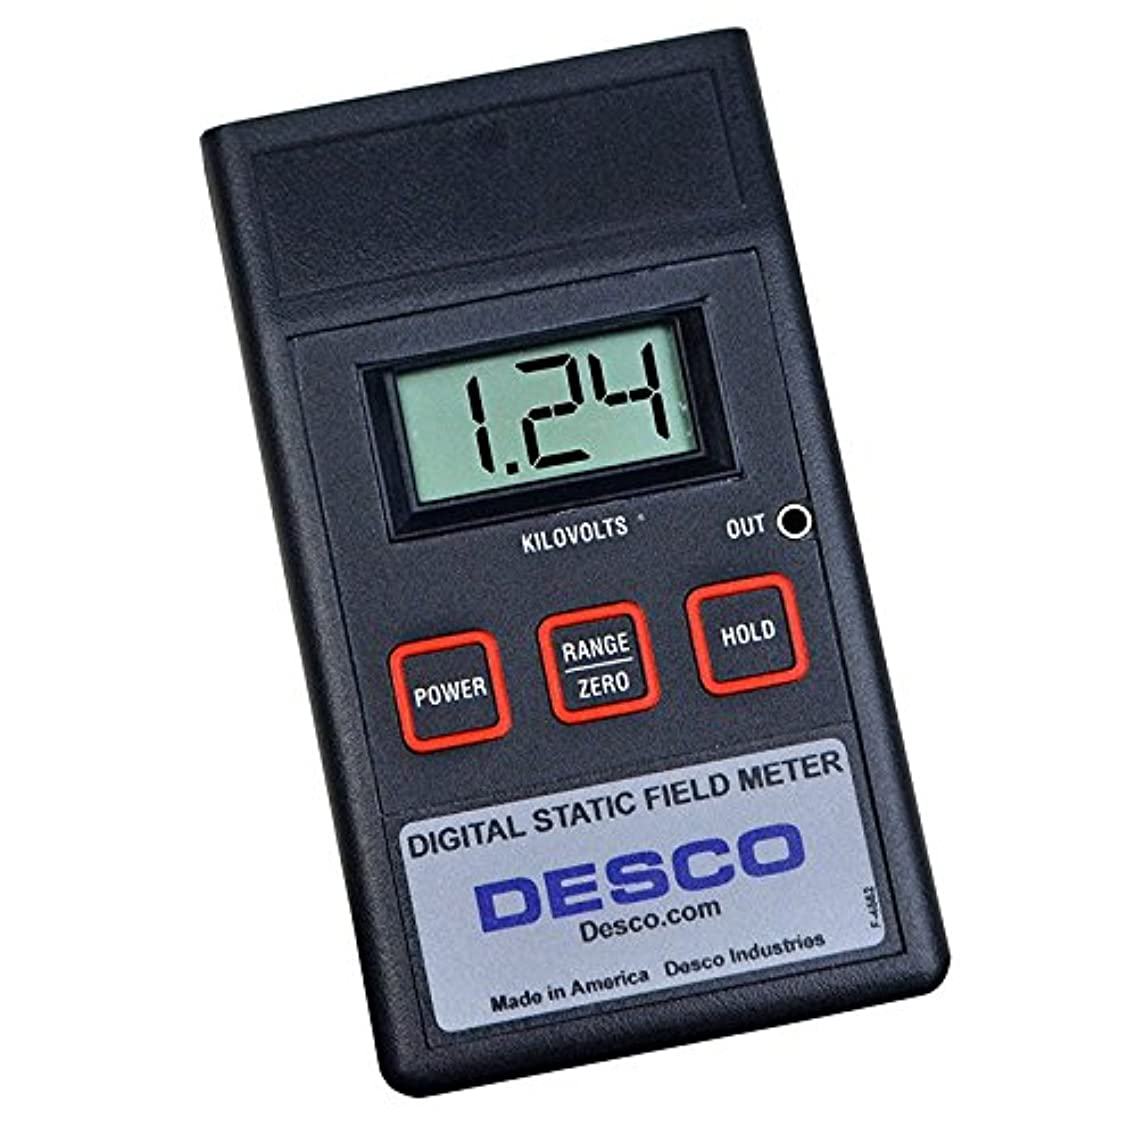 クライアント高架流すDesco 19492 Digital Static Field Meter, +/-19.99kV Power Supply by Desco